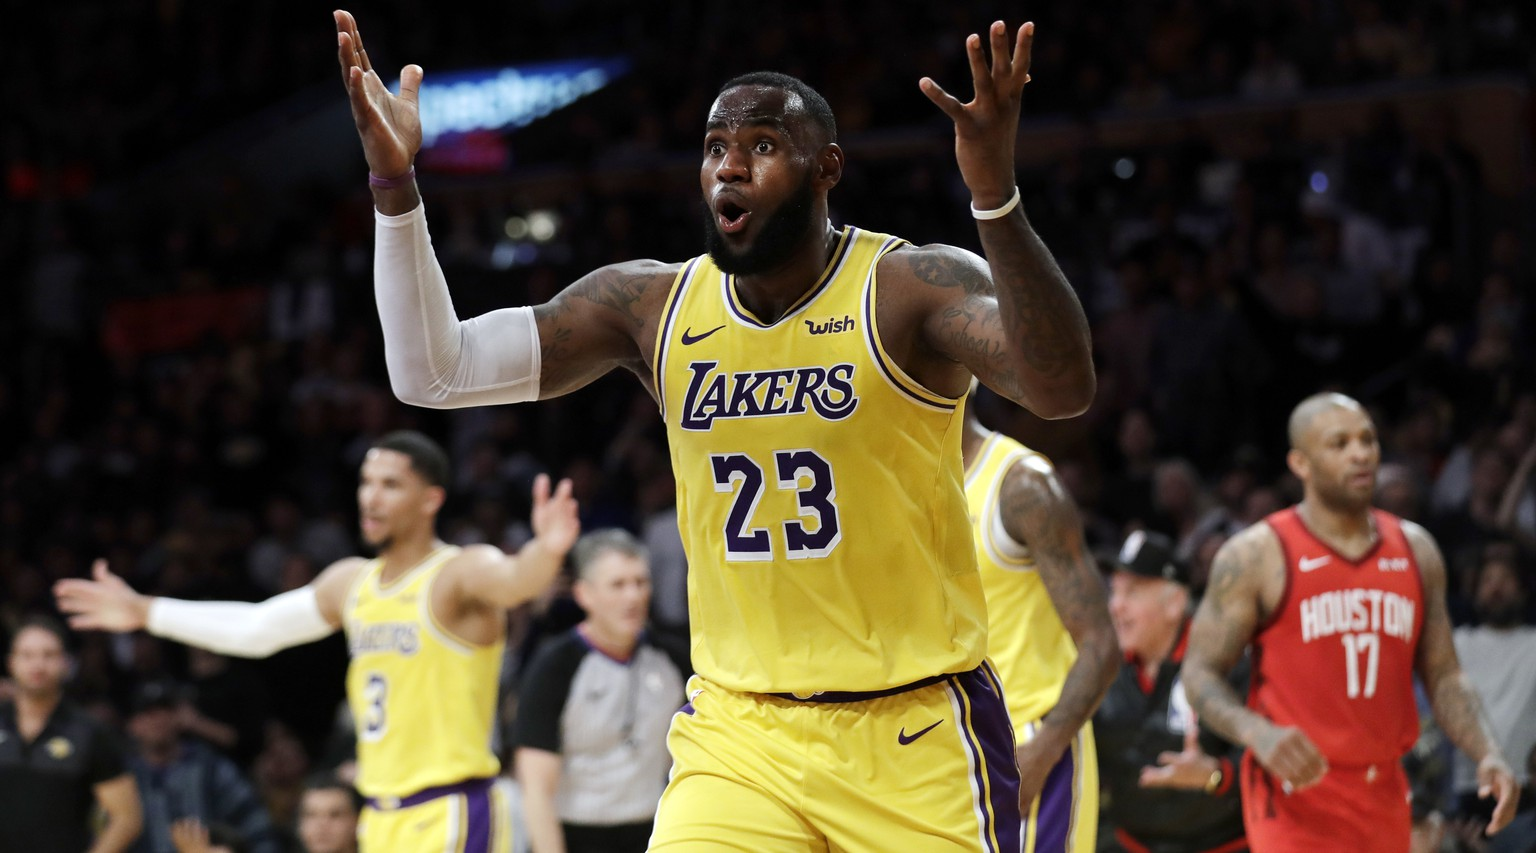 Los Angeles Lakers' LeBron James (23) reacts to a foul called against him during the second half of the team's NBA basketball game against the Houston Rockets on Thursday, Feb. 21, 2019, in Los Angeles. (AP Photo/Marcio Jose Sanchez)